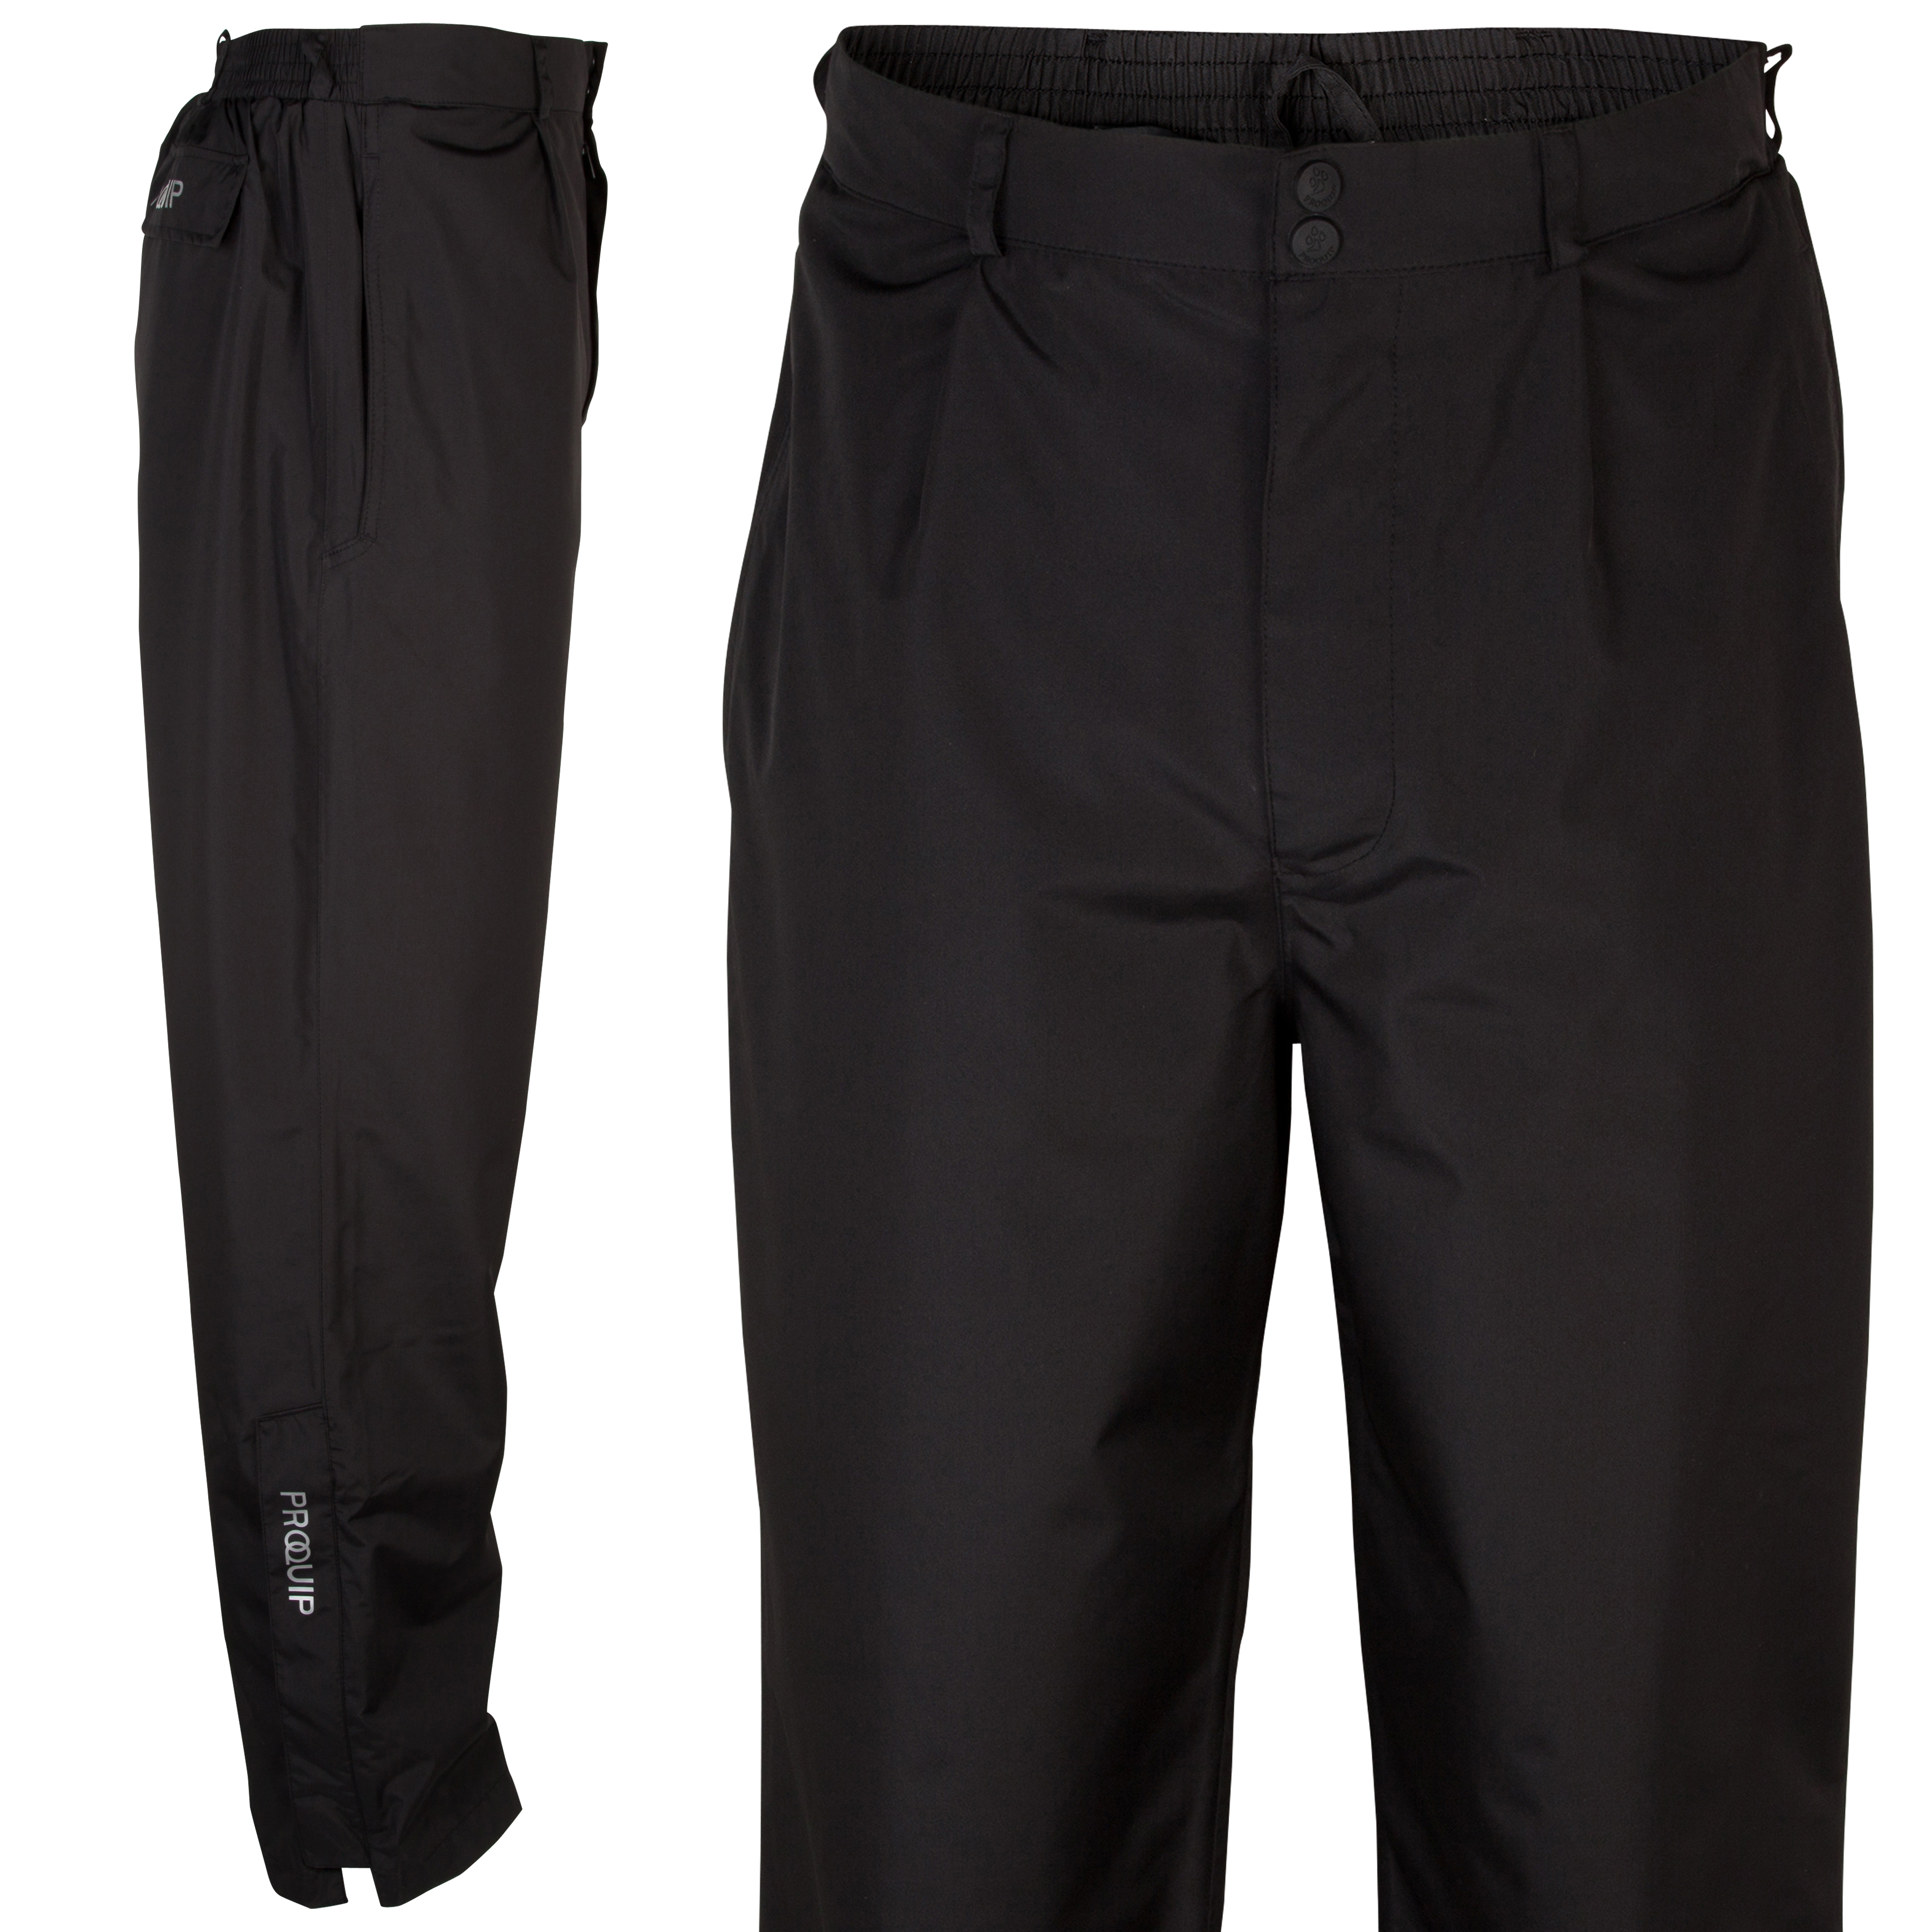 The Ryder Cup Gleneagles 2014 Pro-Quip Ultralite Europa Waterproof Trousers - Black